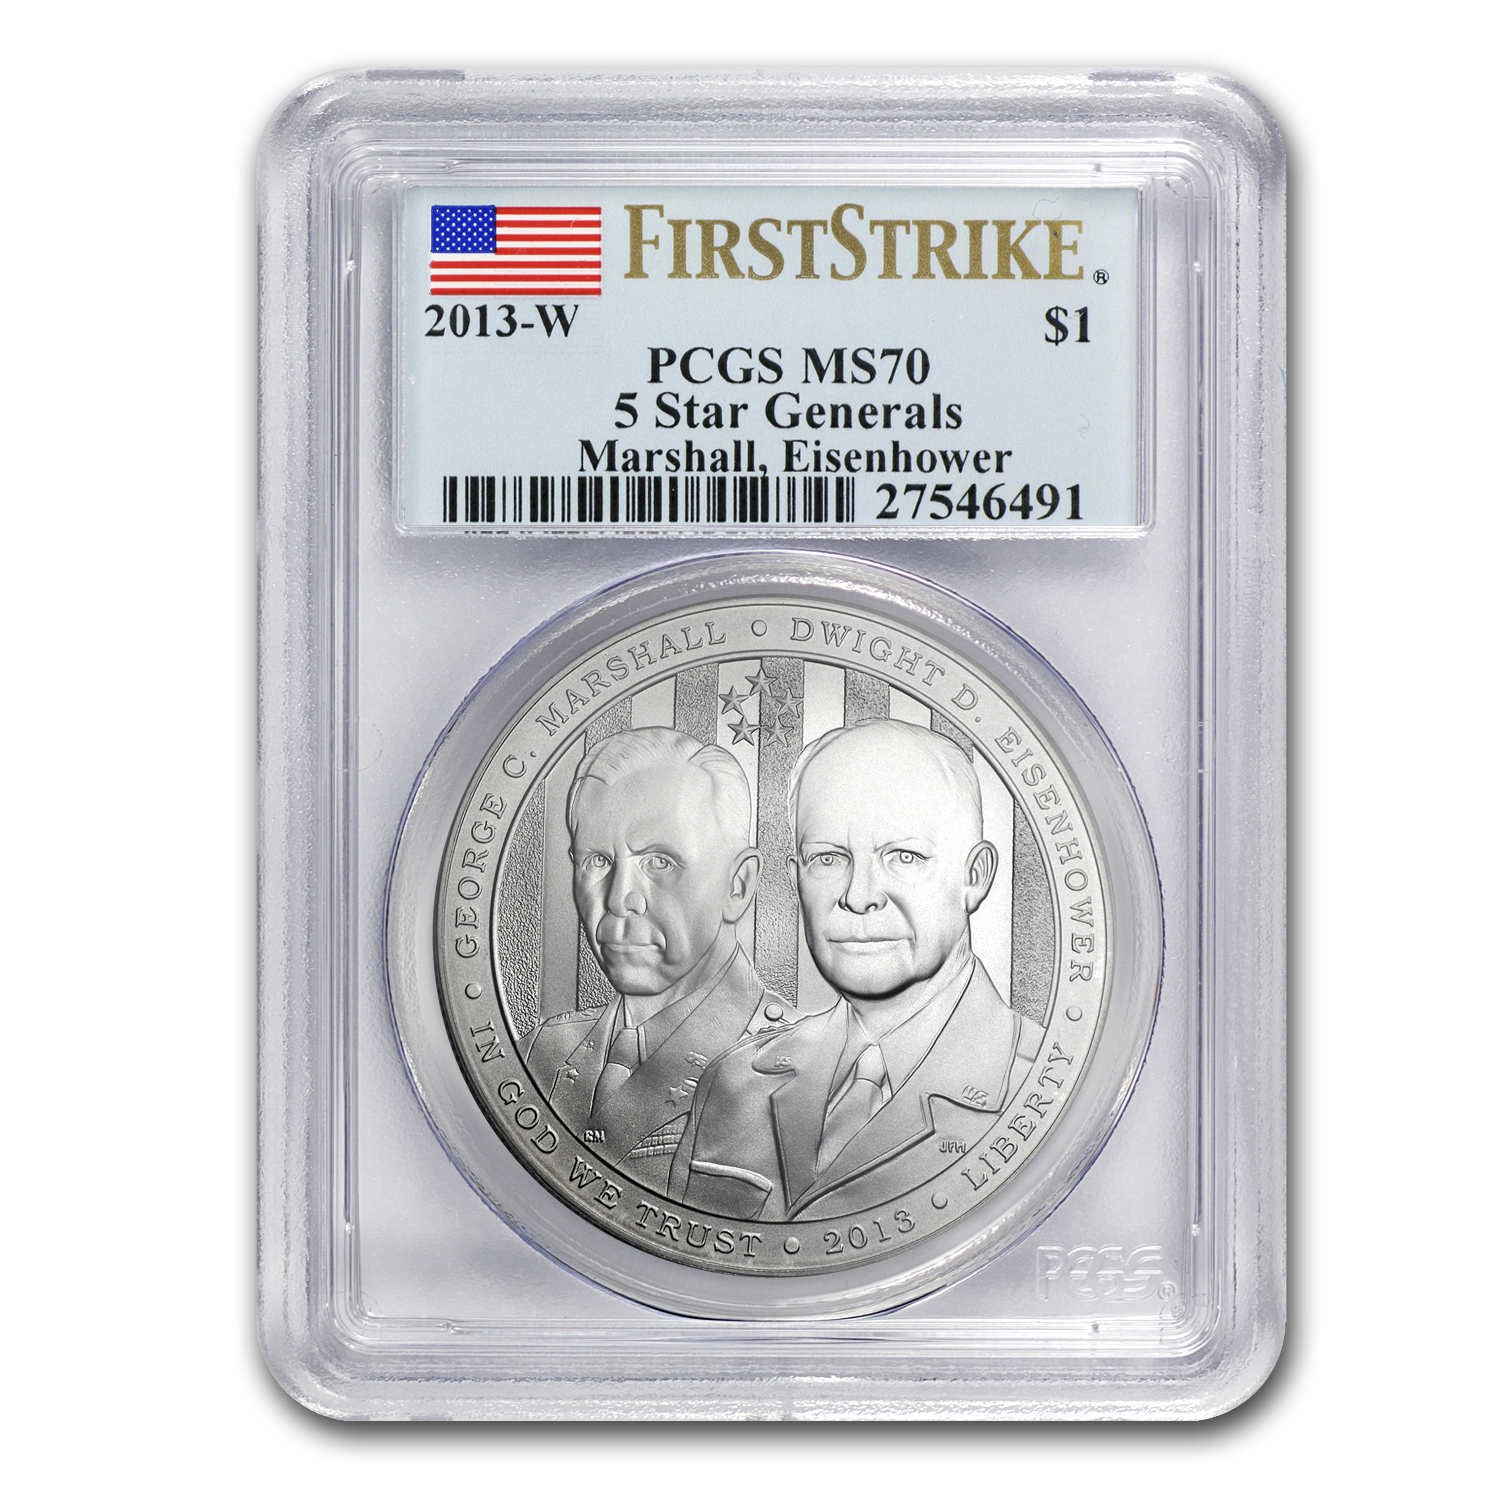 2013-W Five Star General $1 Silver Commem MS-70 PCGS (FS)